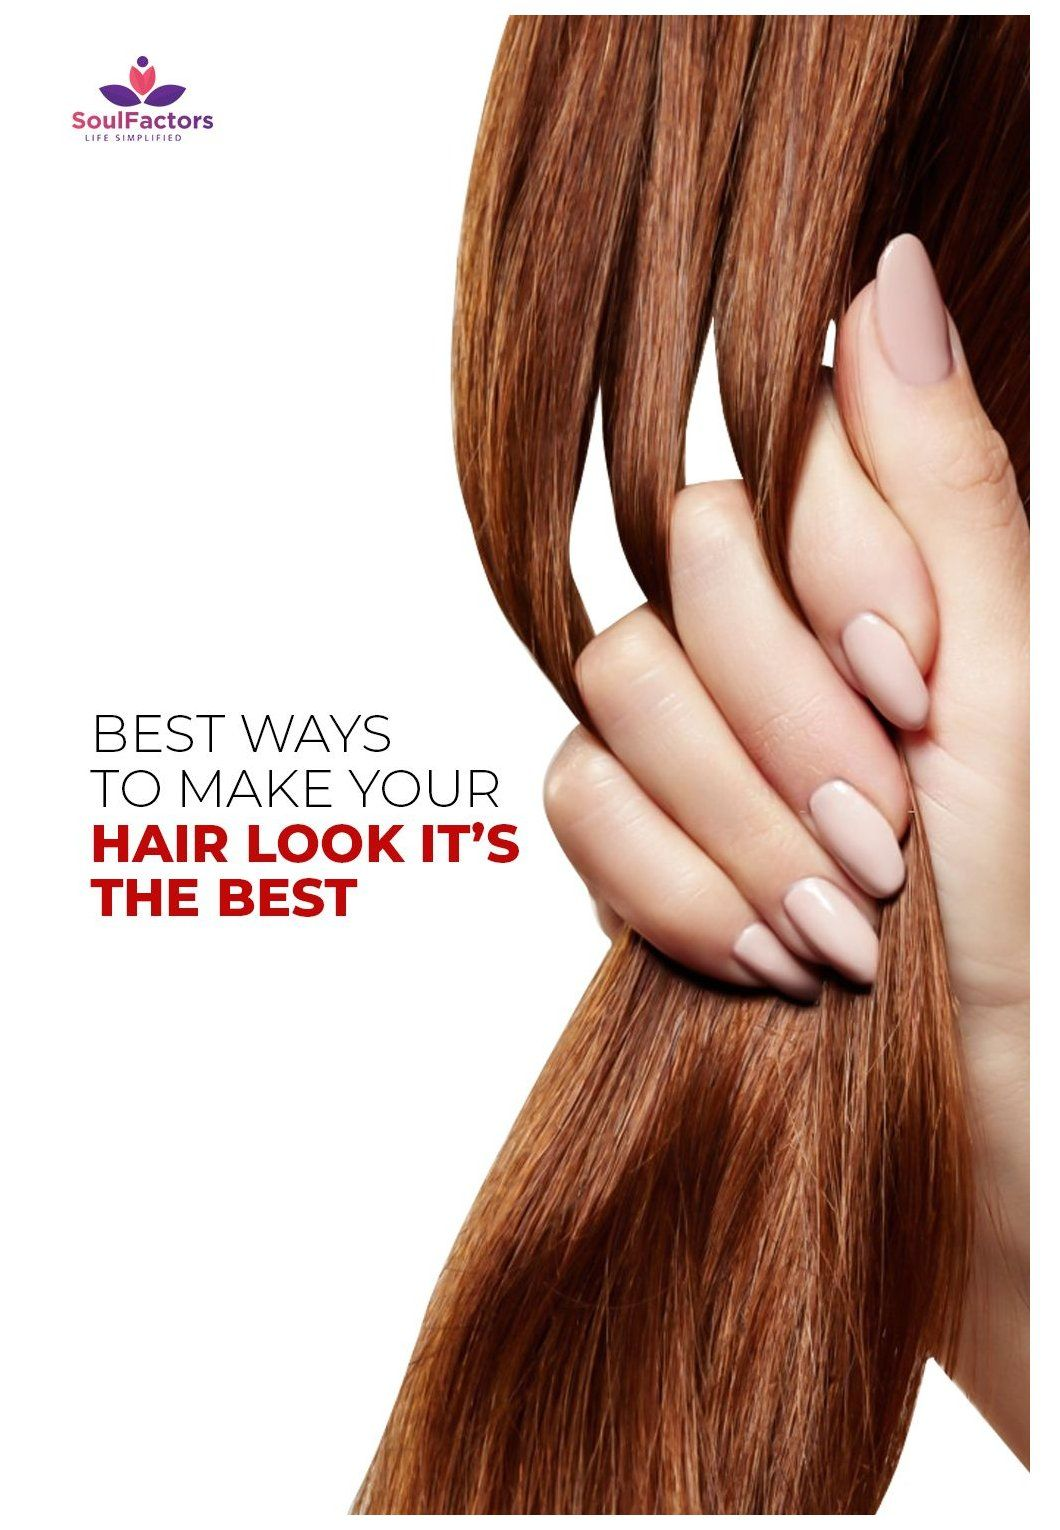 10 Simple Yet Effective Ways To Make Your Hair Soft Silky And Long Hair Care Tips For Men Hindi Here Are 10 Effective Ways To Make Your Hair Soft Silky 2020